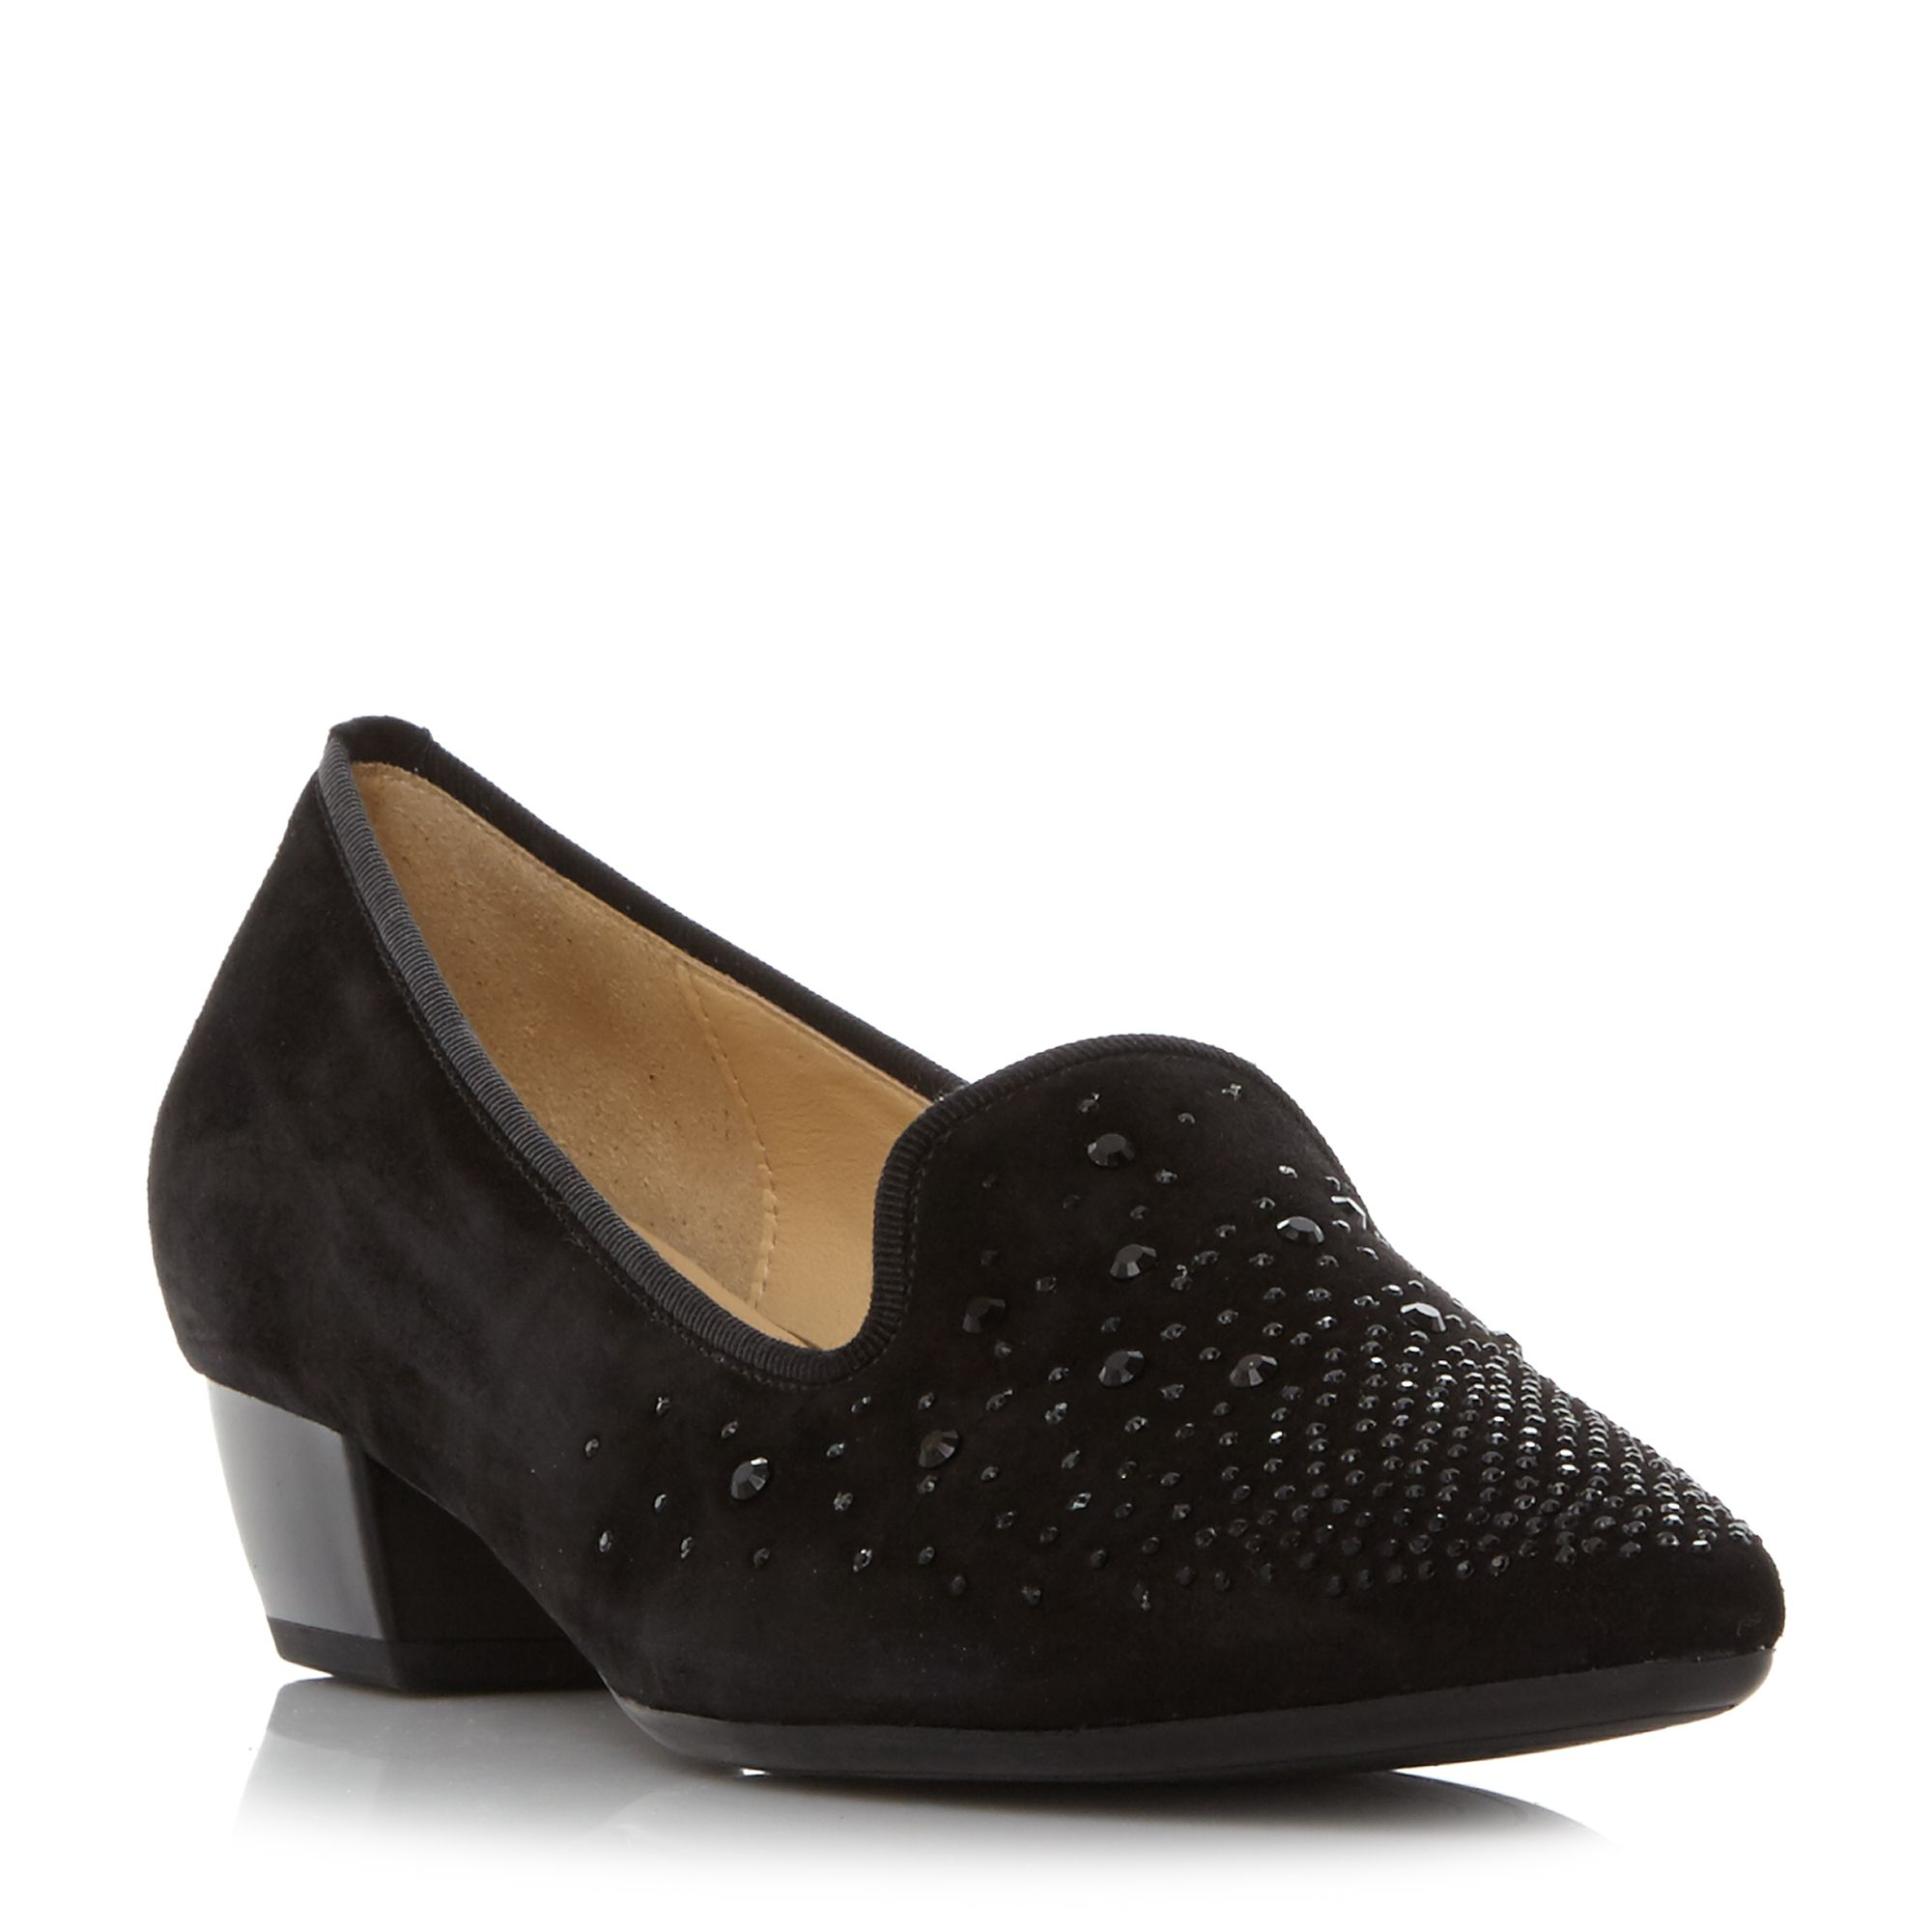 Gabor GOODY EMBELLISHED POINTED PUMP SHOES, Black